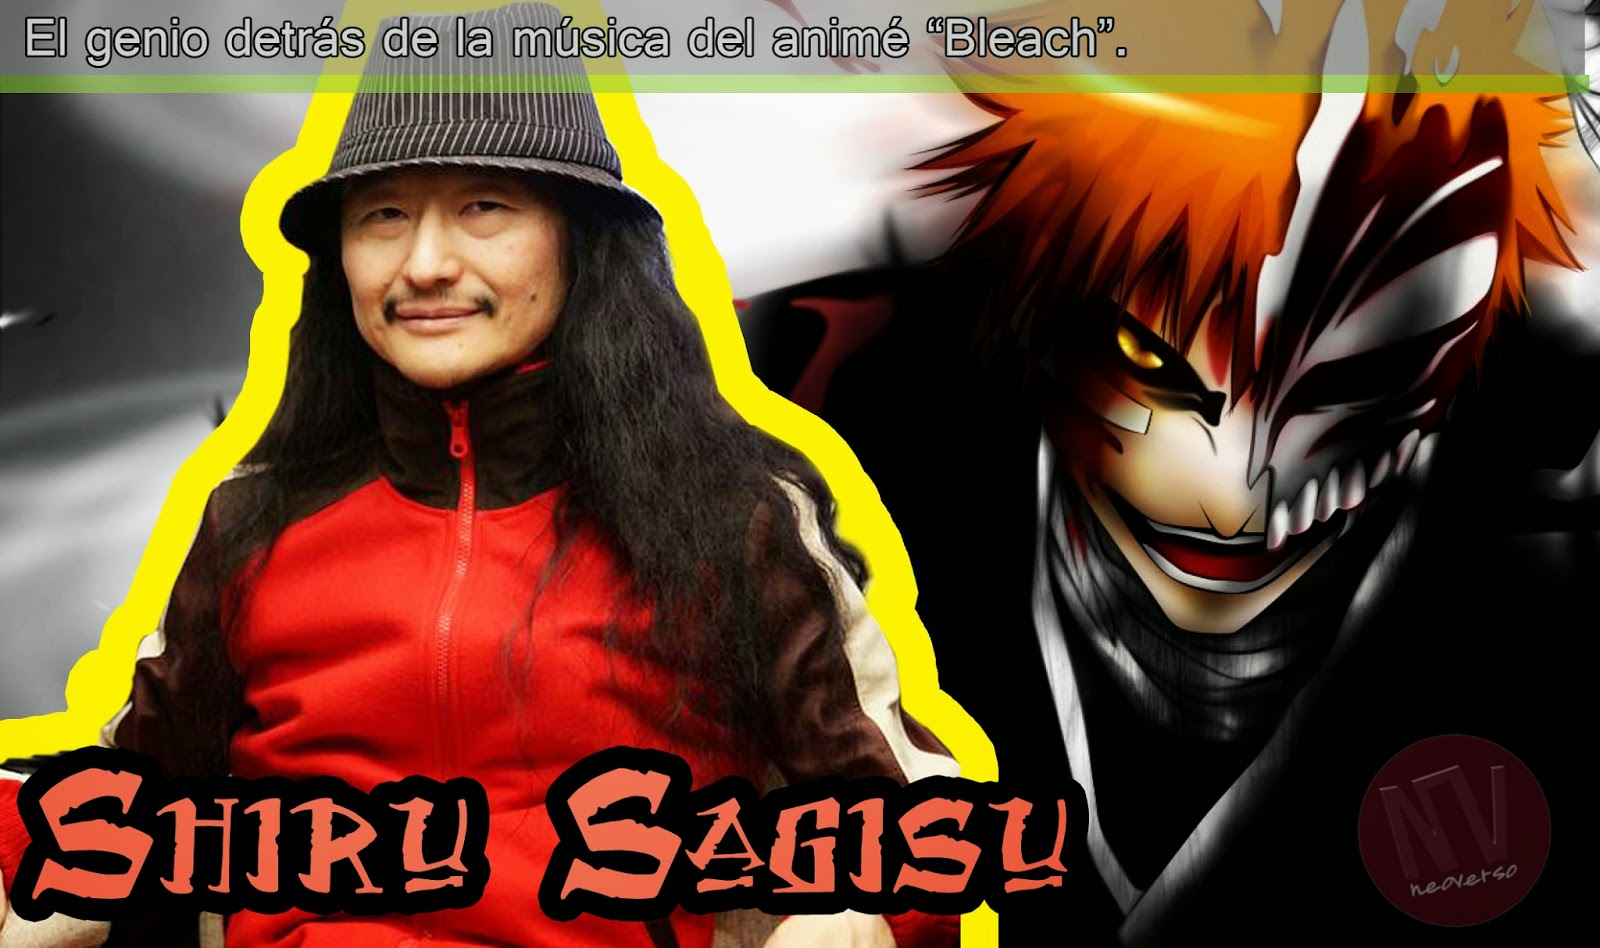 Bleach y la creatividad musical de Shiro Sagisu